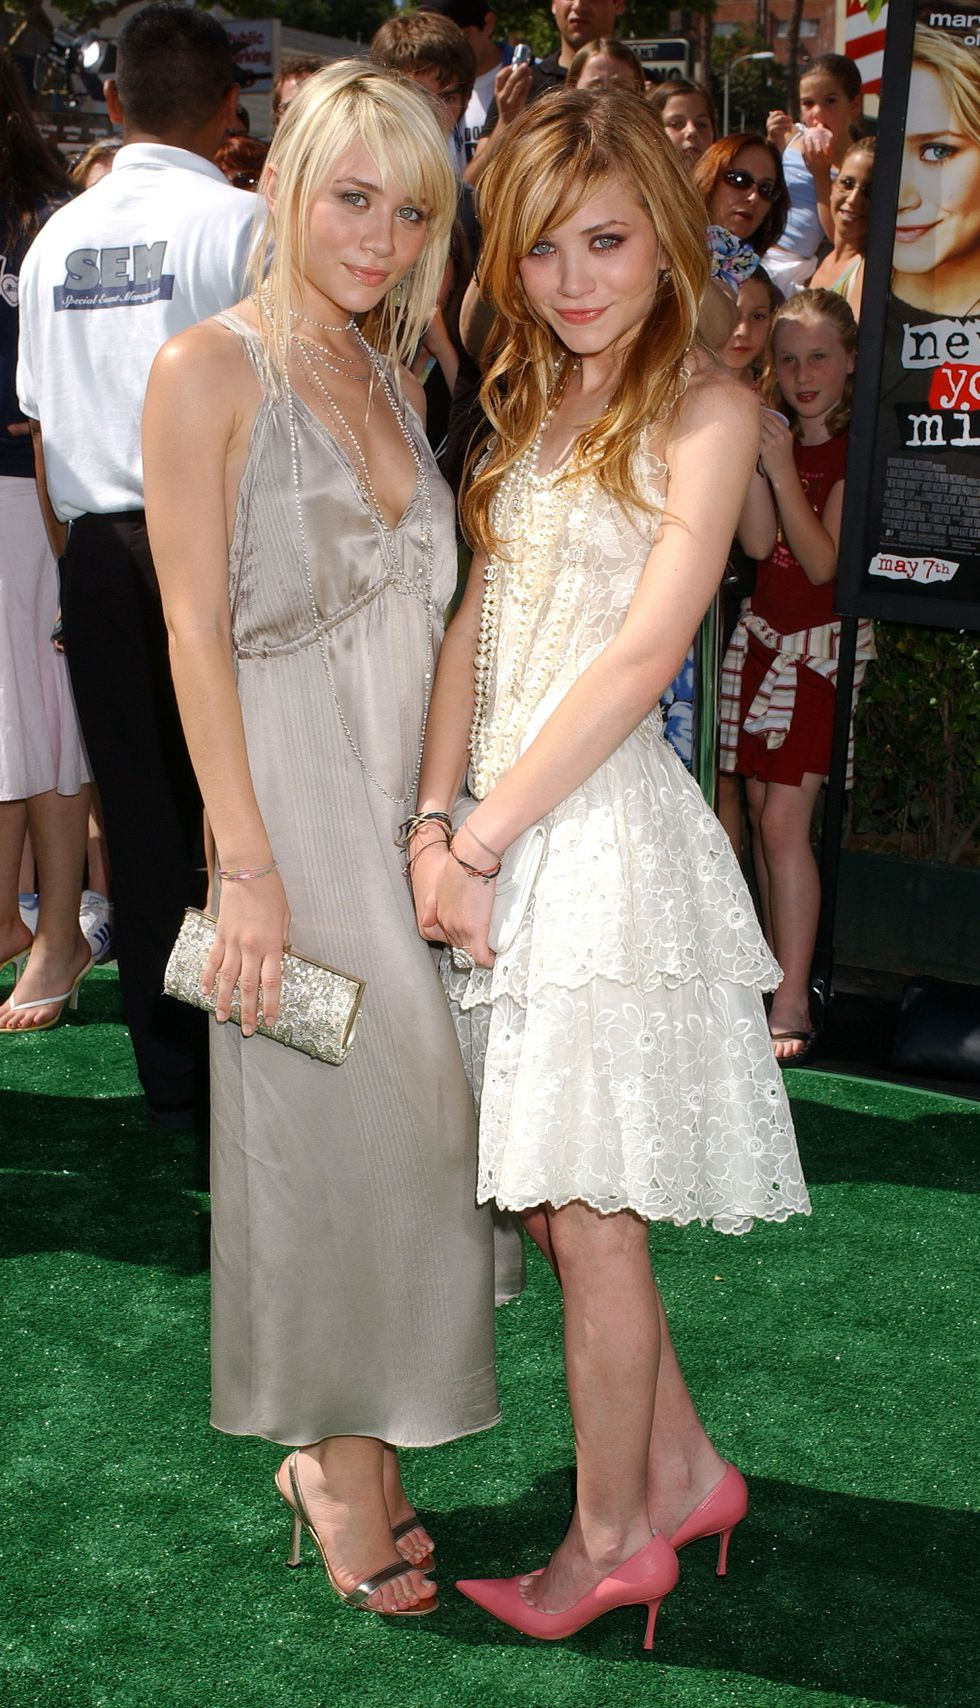 May 1, 2004 A few days later, the twins attended the premiere of their movie, New York Minute . Both went for feminine looks with Ashley wearing a satin slip dress and Mary-Kate in a tiered eyelet dress.